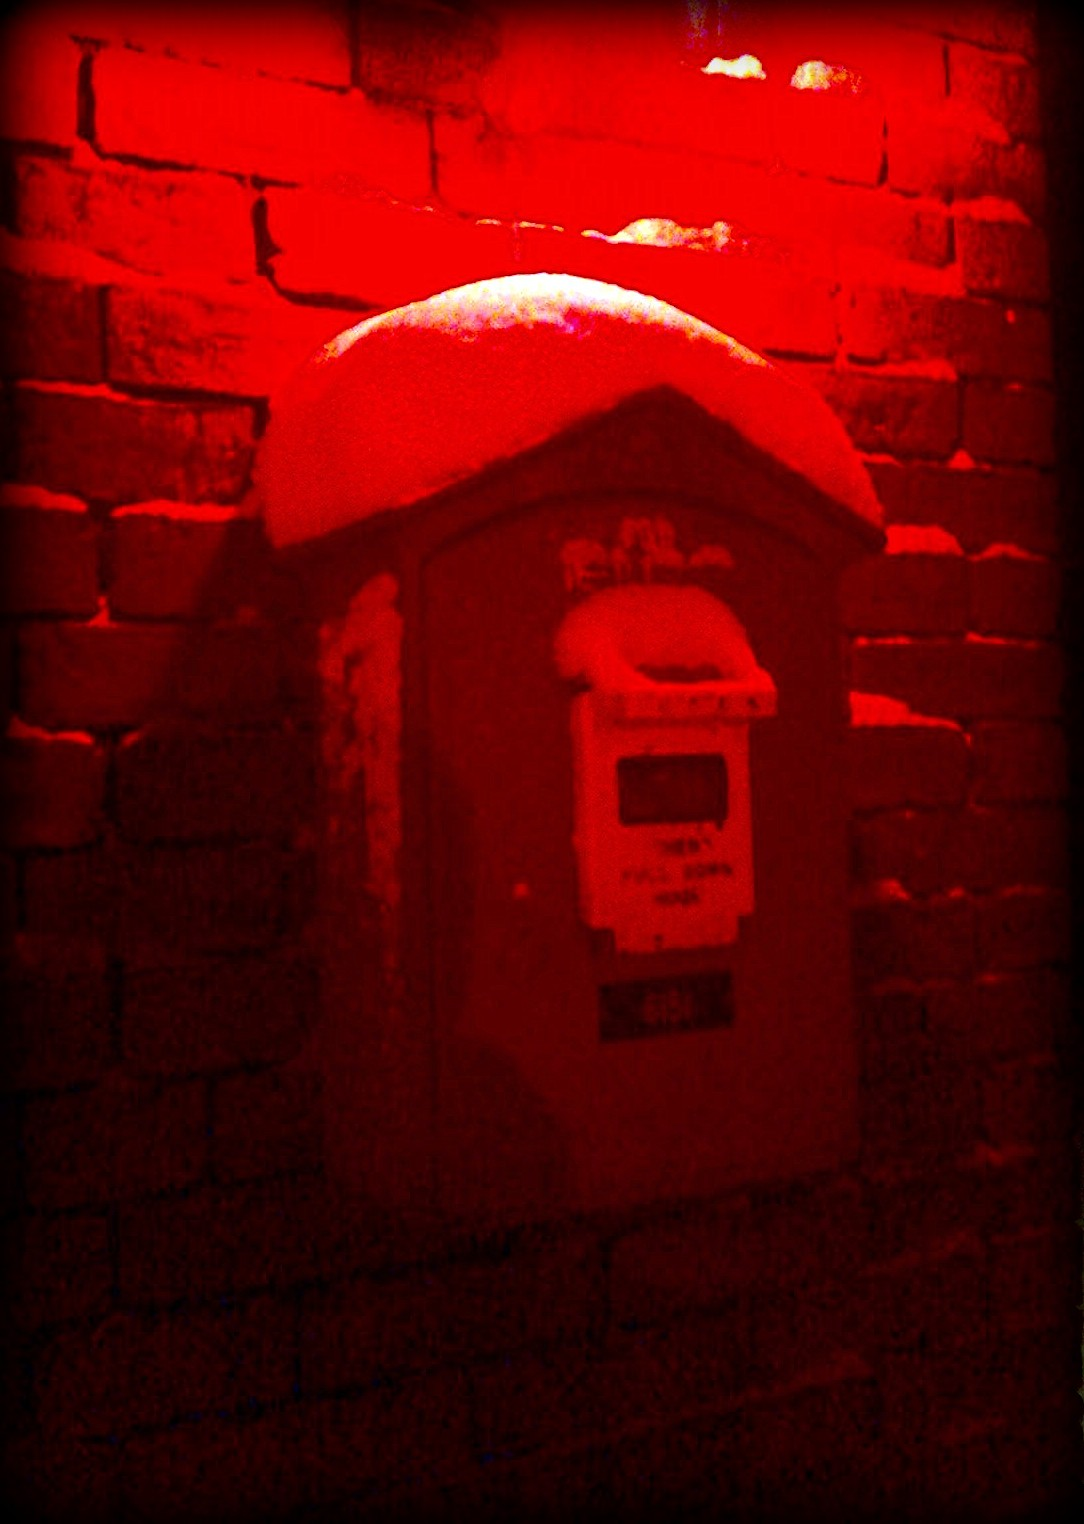 fire call box, fire station, red, salem, snow